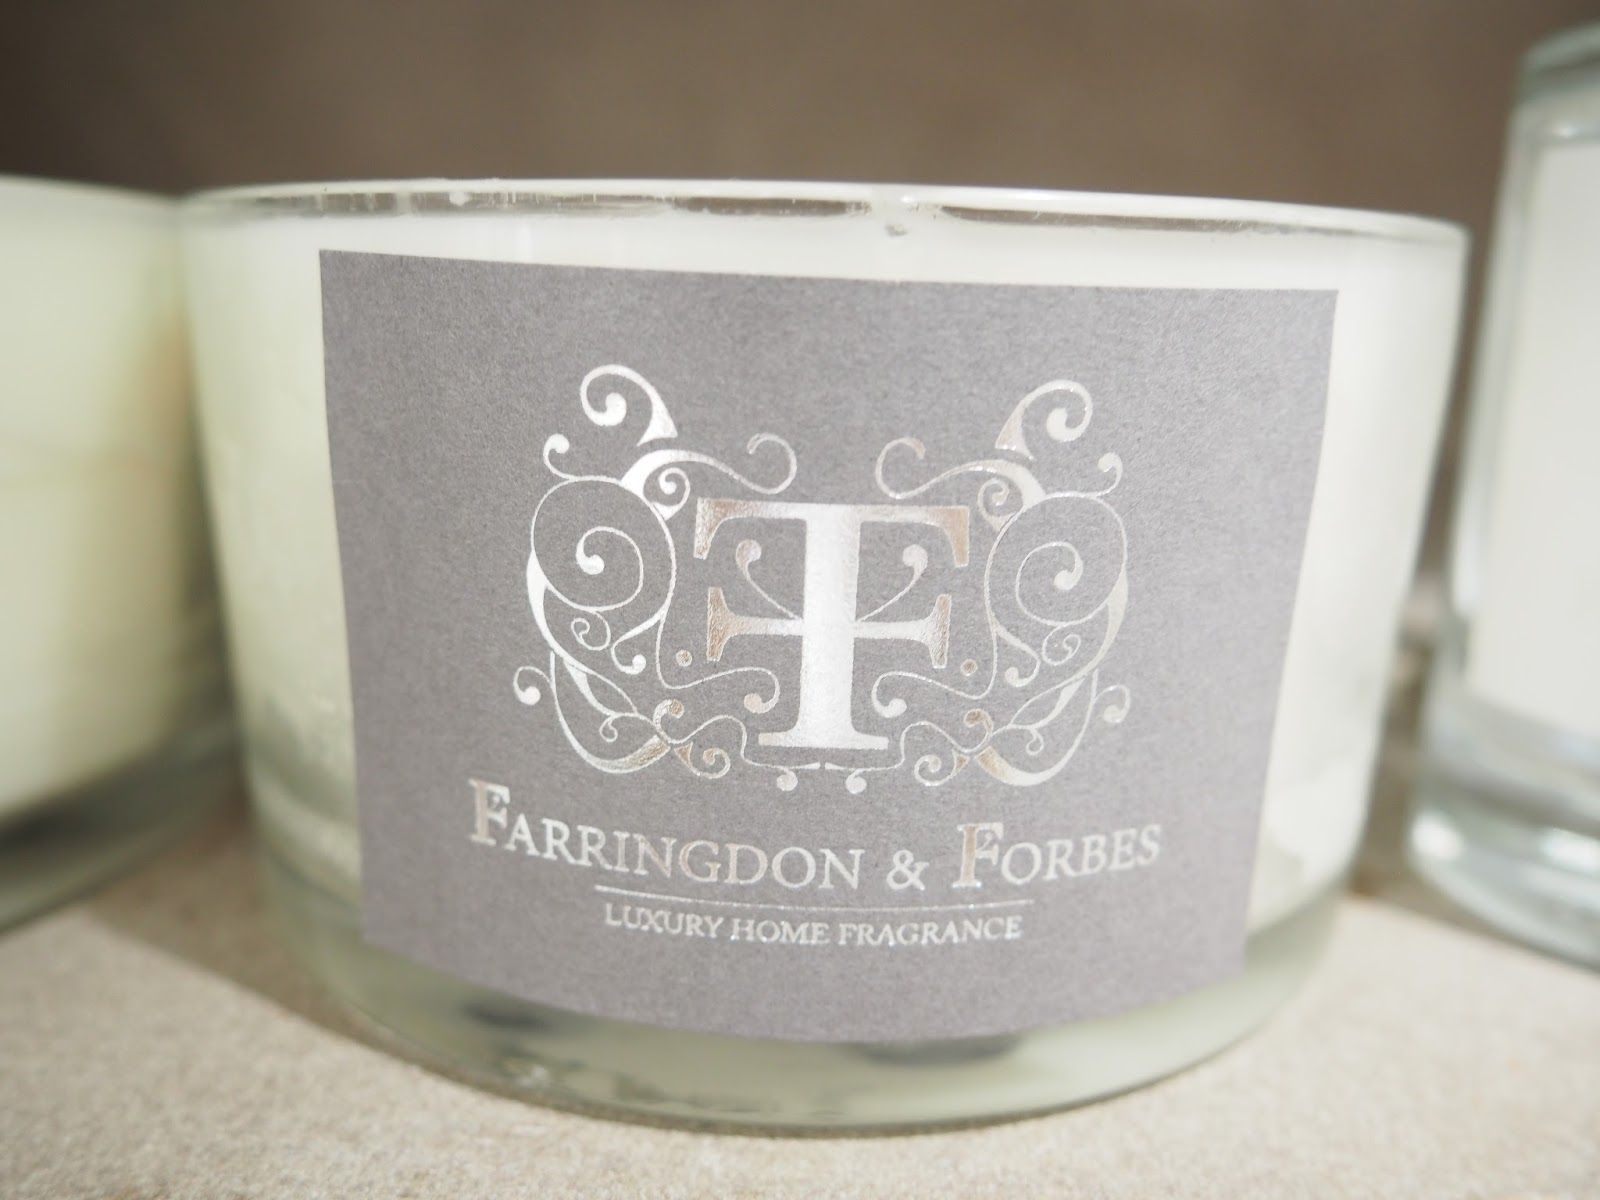 Farringdon & Forbes, luxury home fragrance, candles, Birmingham